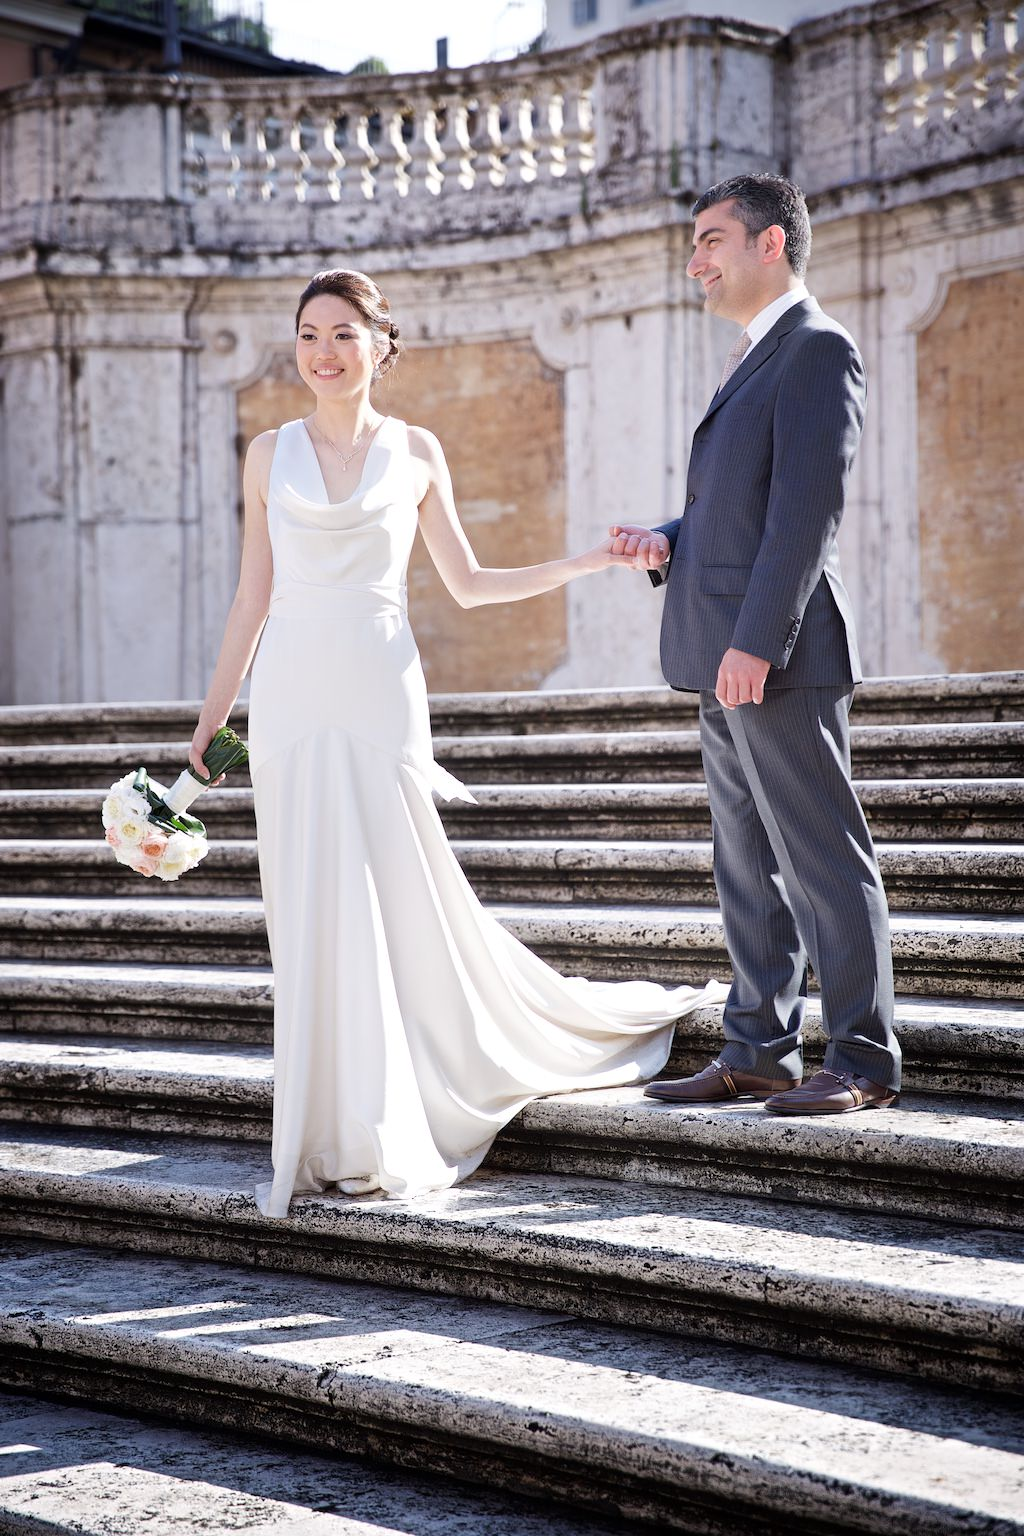 Wedding Rome blessing elopement il palazzetto spanish steps piazza navona colosseum